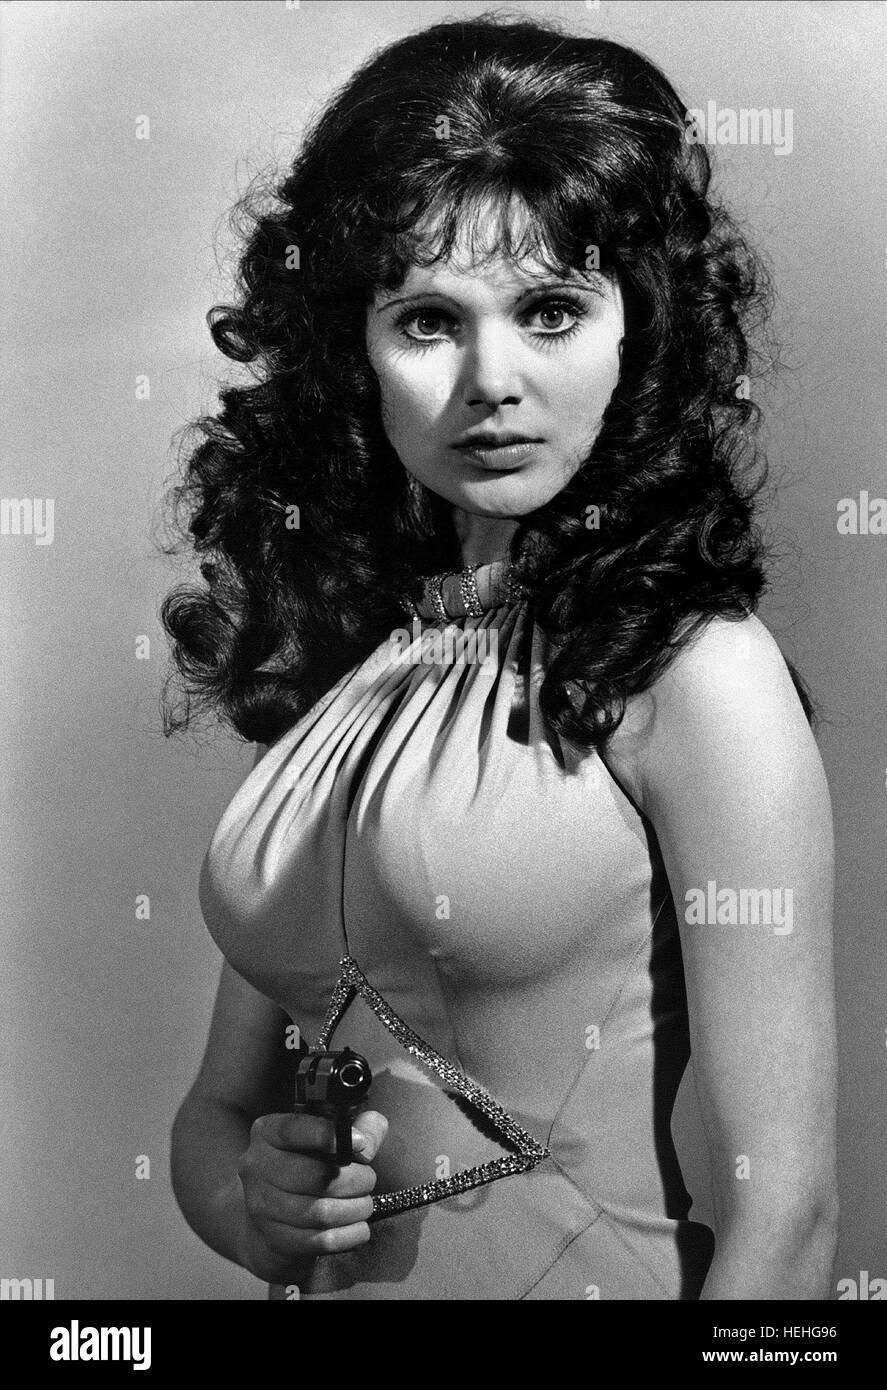 MADELINE SMITH JAMES BOND: LIVE AND LET DIE (1973) - Stock Image